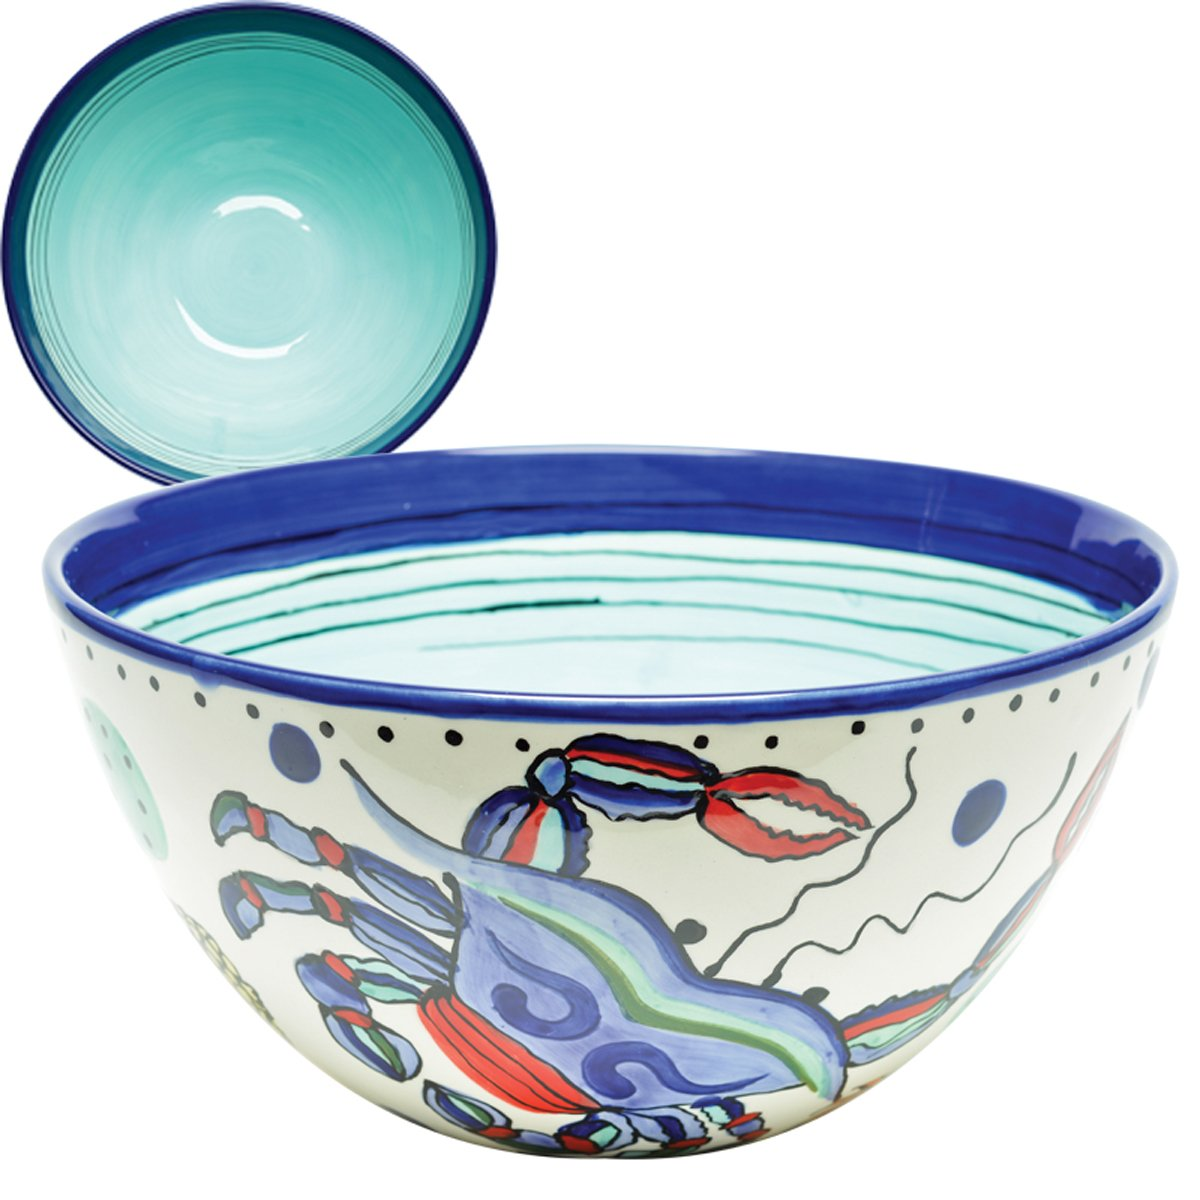 Christmas Tablescape Décor - Medium ceramic whimsical and vibrant crab inspired multicolor serving bowl by Dana Wittmann